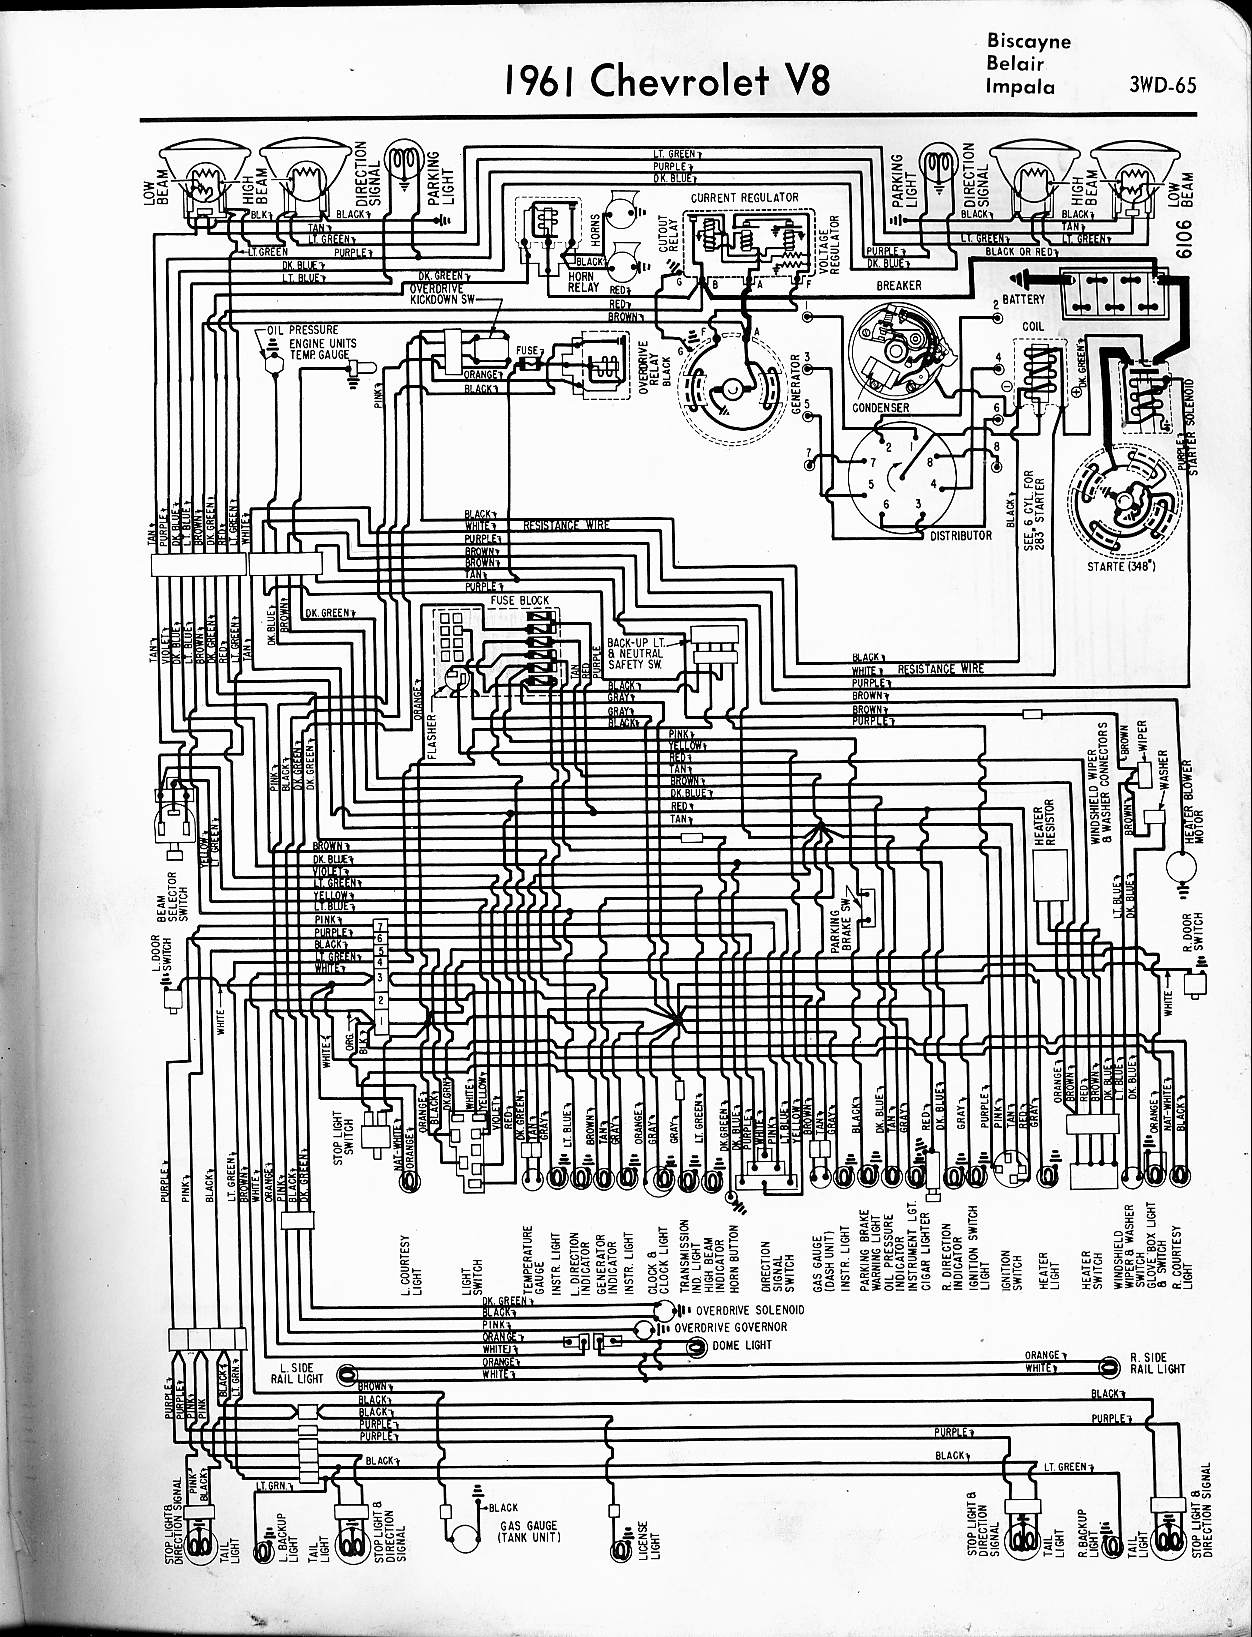 1965 Chevy Impala Wiring Diagram Schematic Sample Diagrams Automotive 57 65 1957 1961 V8 Biscayne Belair